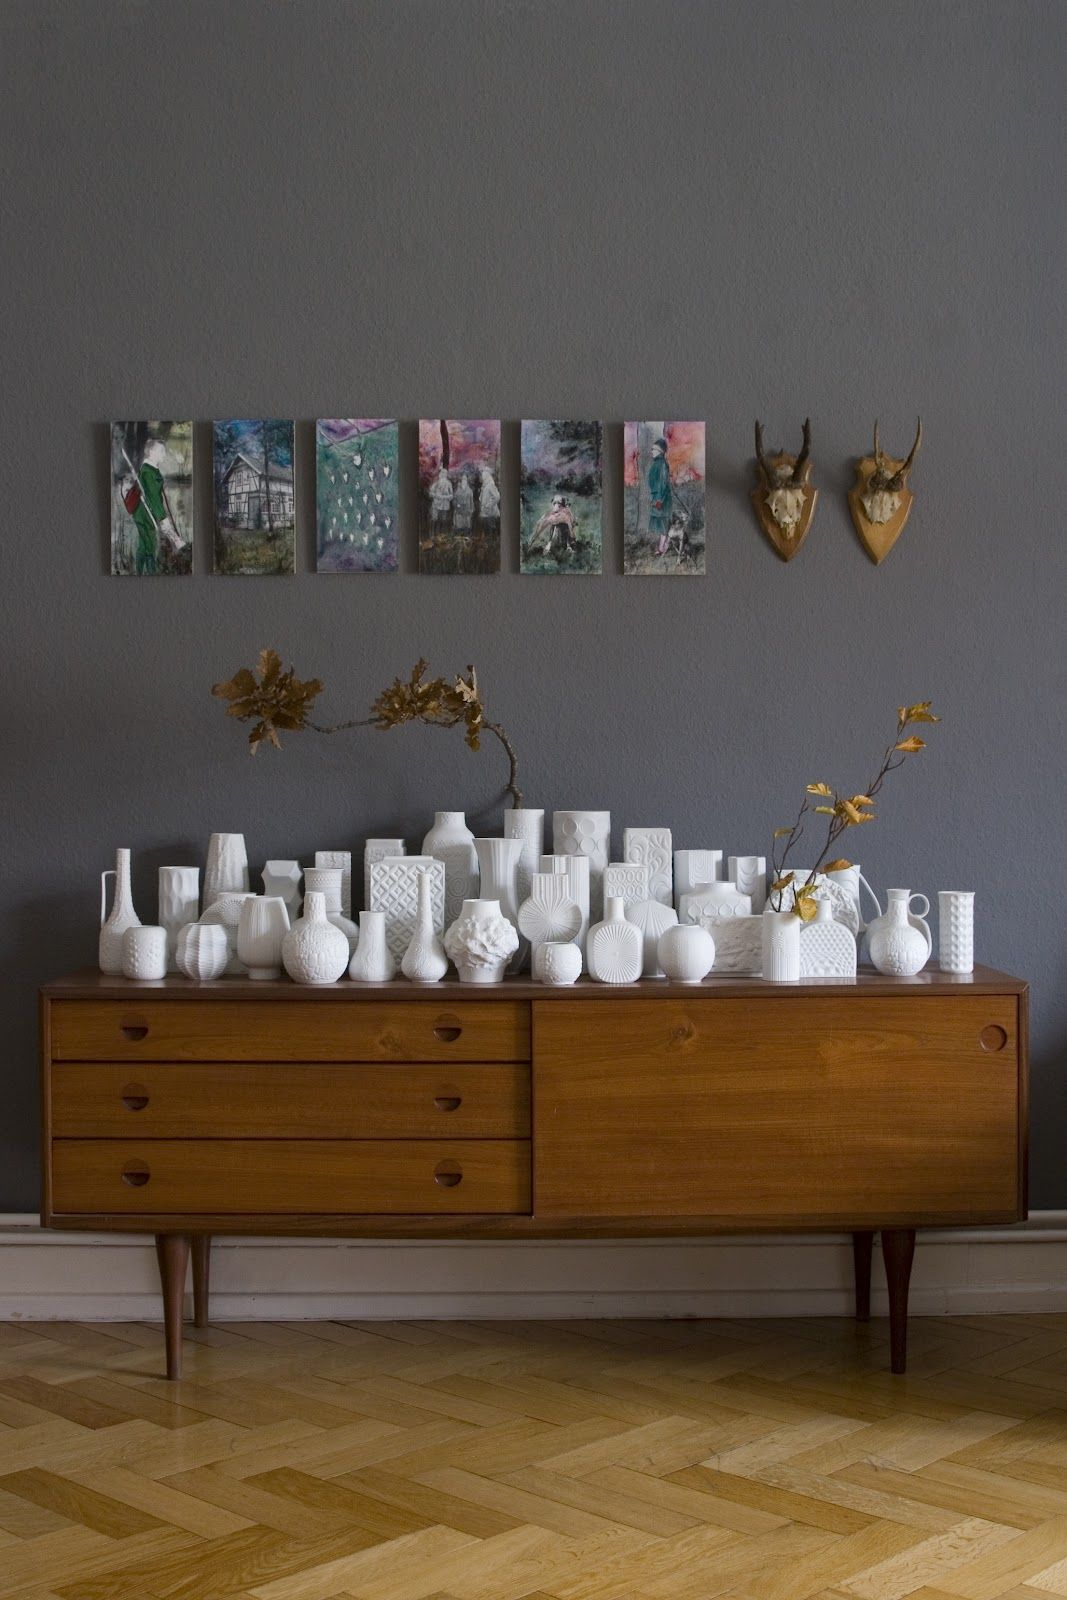 you can never have too many white gerrman porcelain vases!